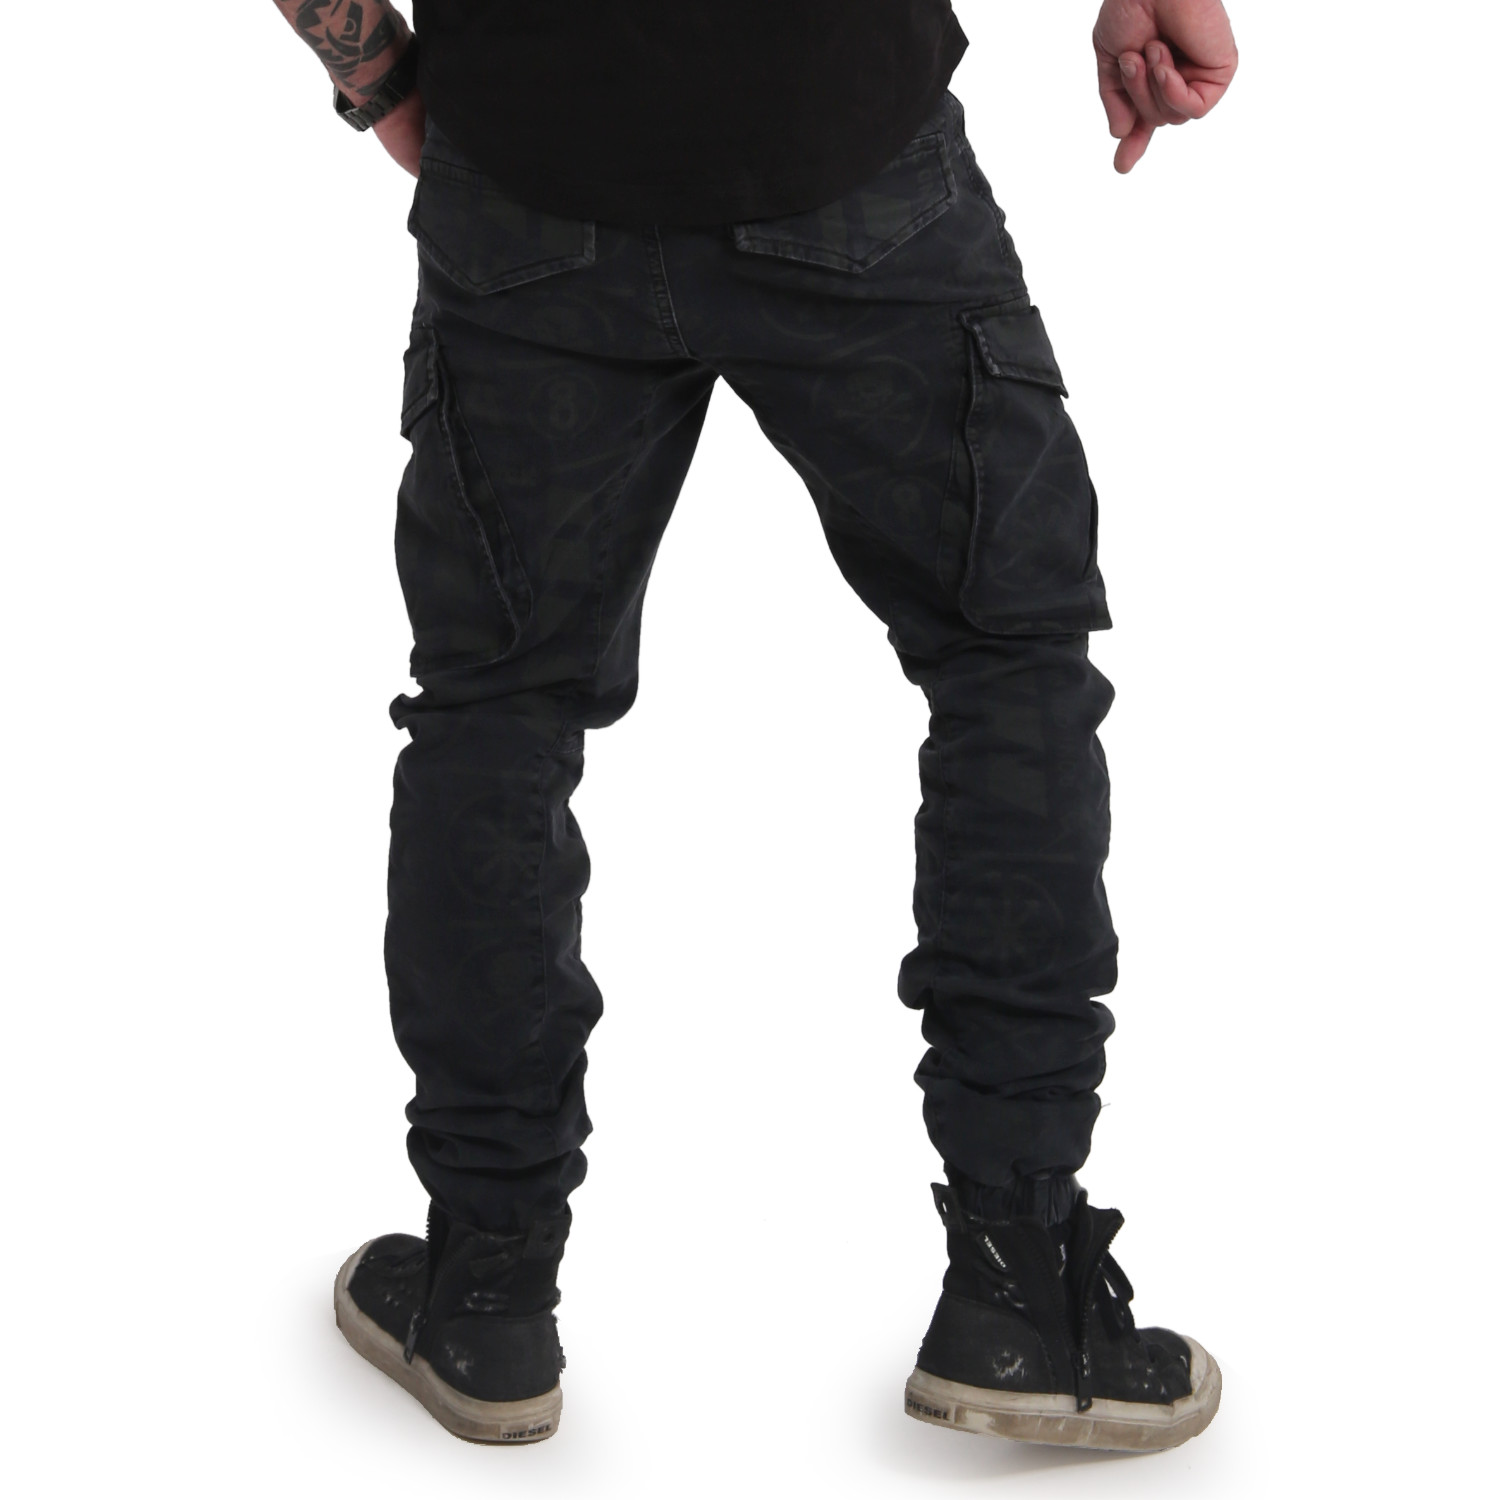 Allover Pattern Grip Cargo Pants